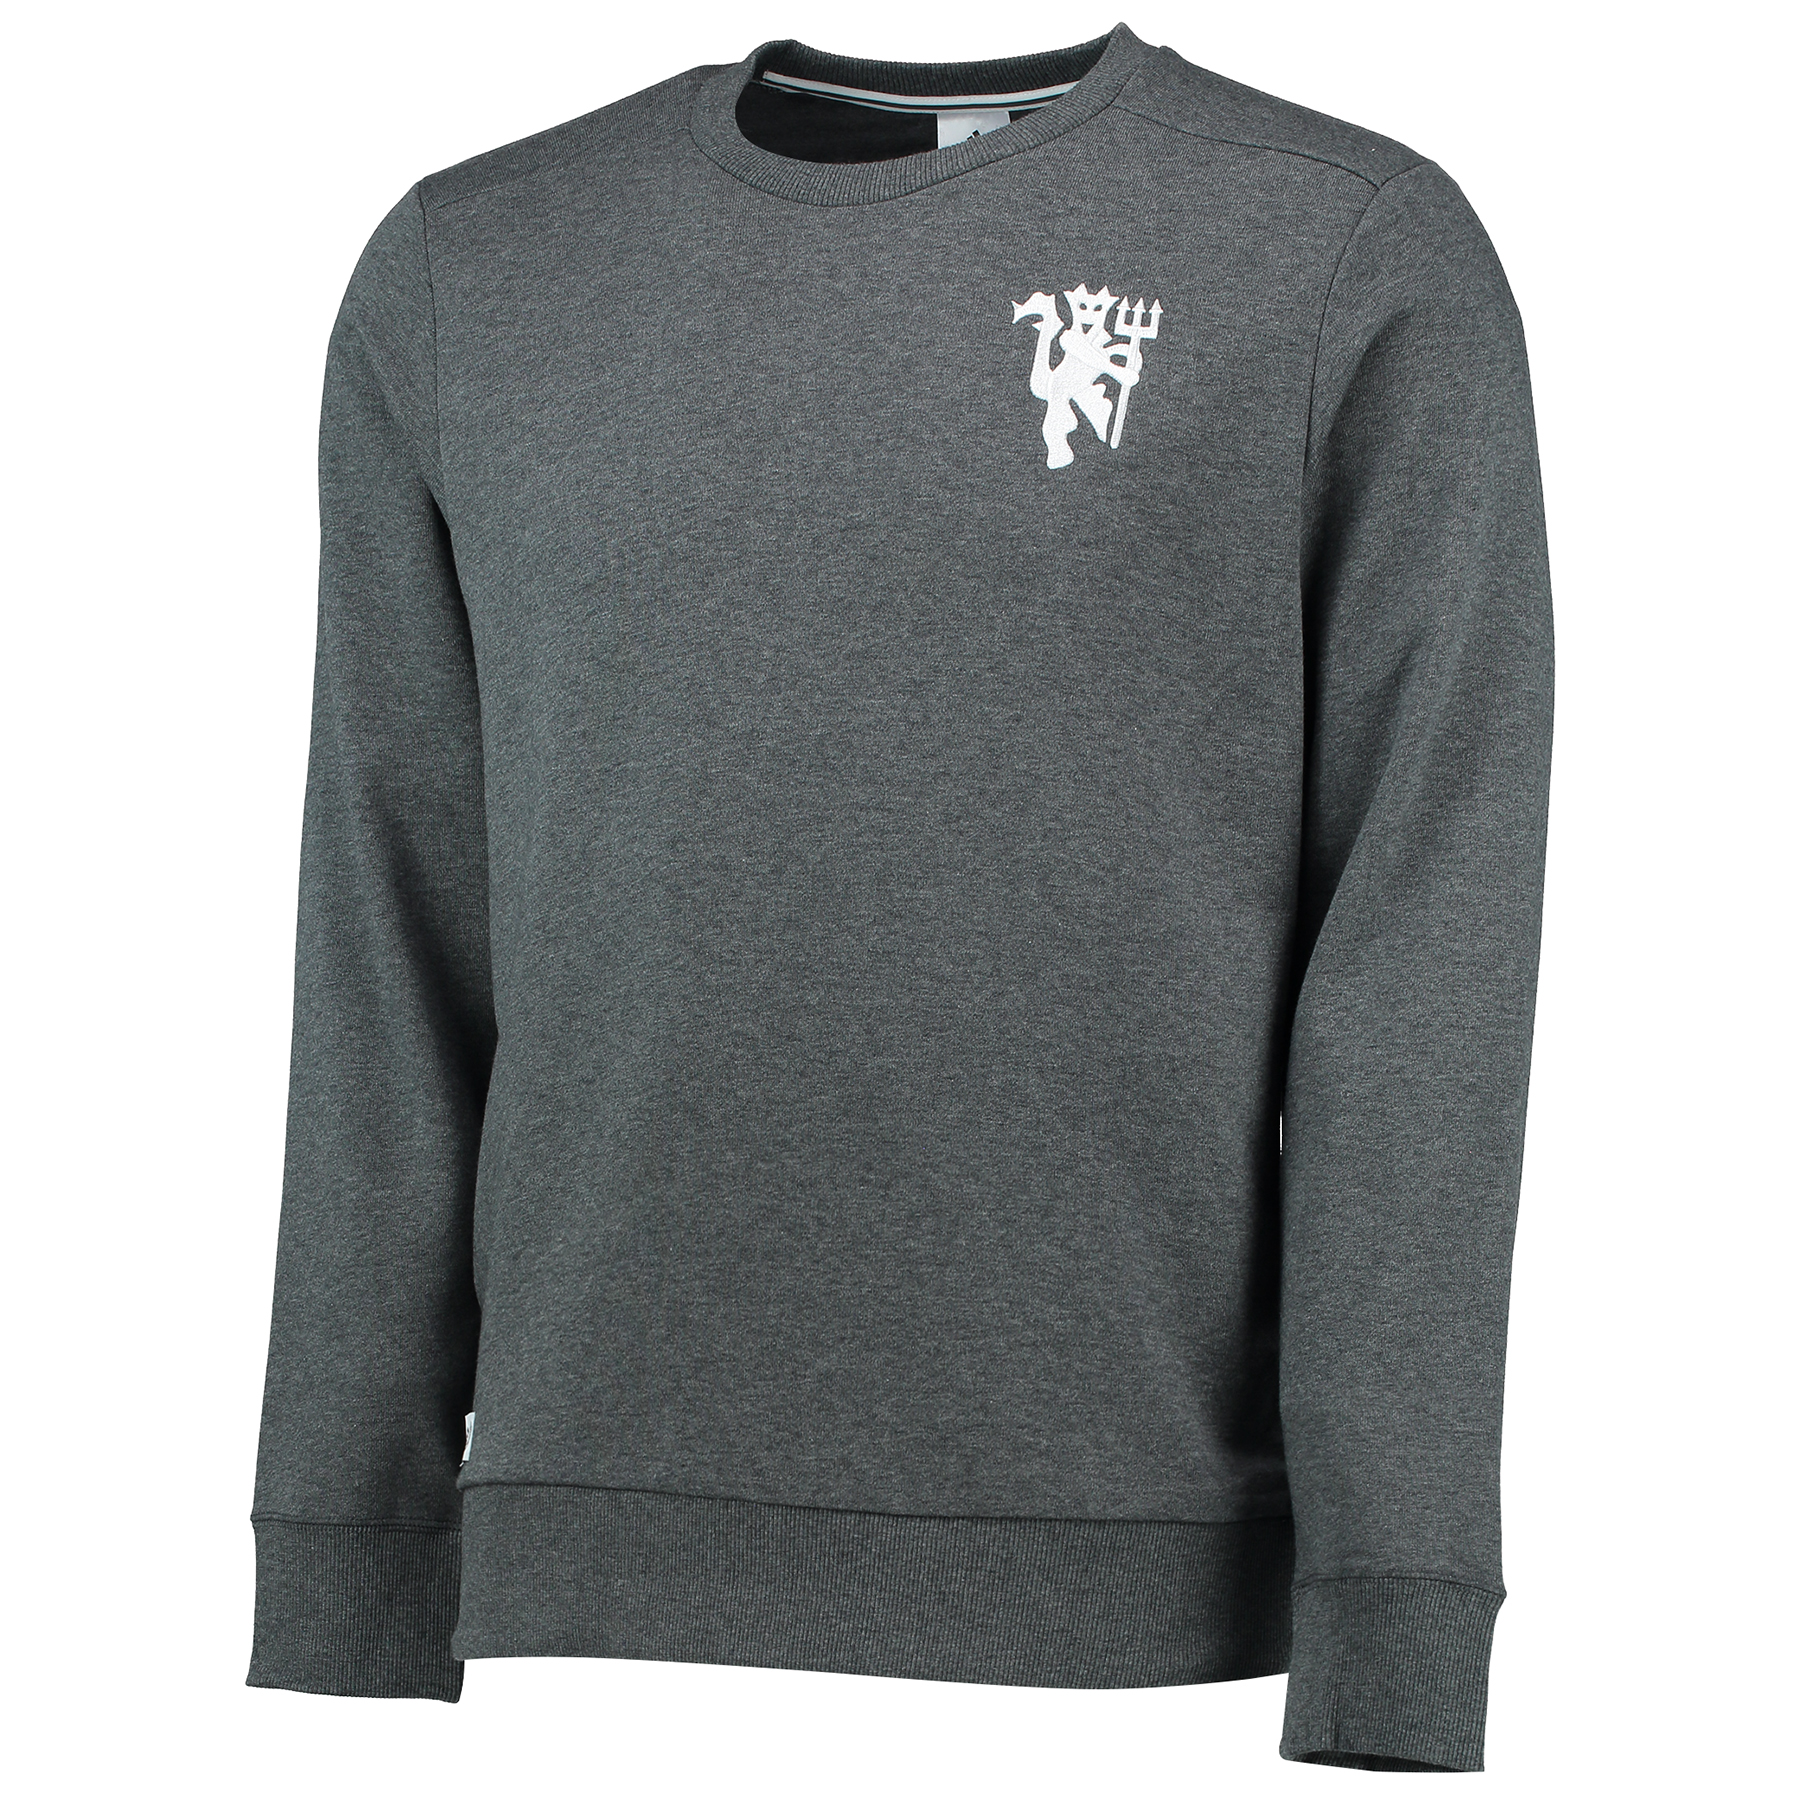 Manchester United Core Crew Sweatshirt - Dark Grey